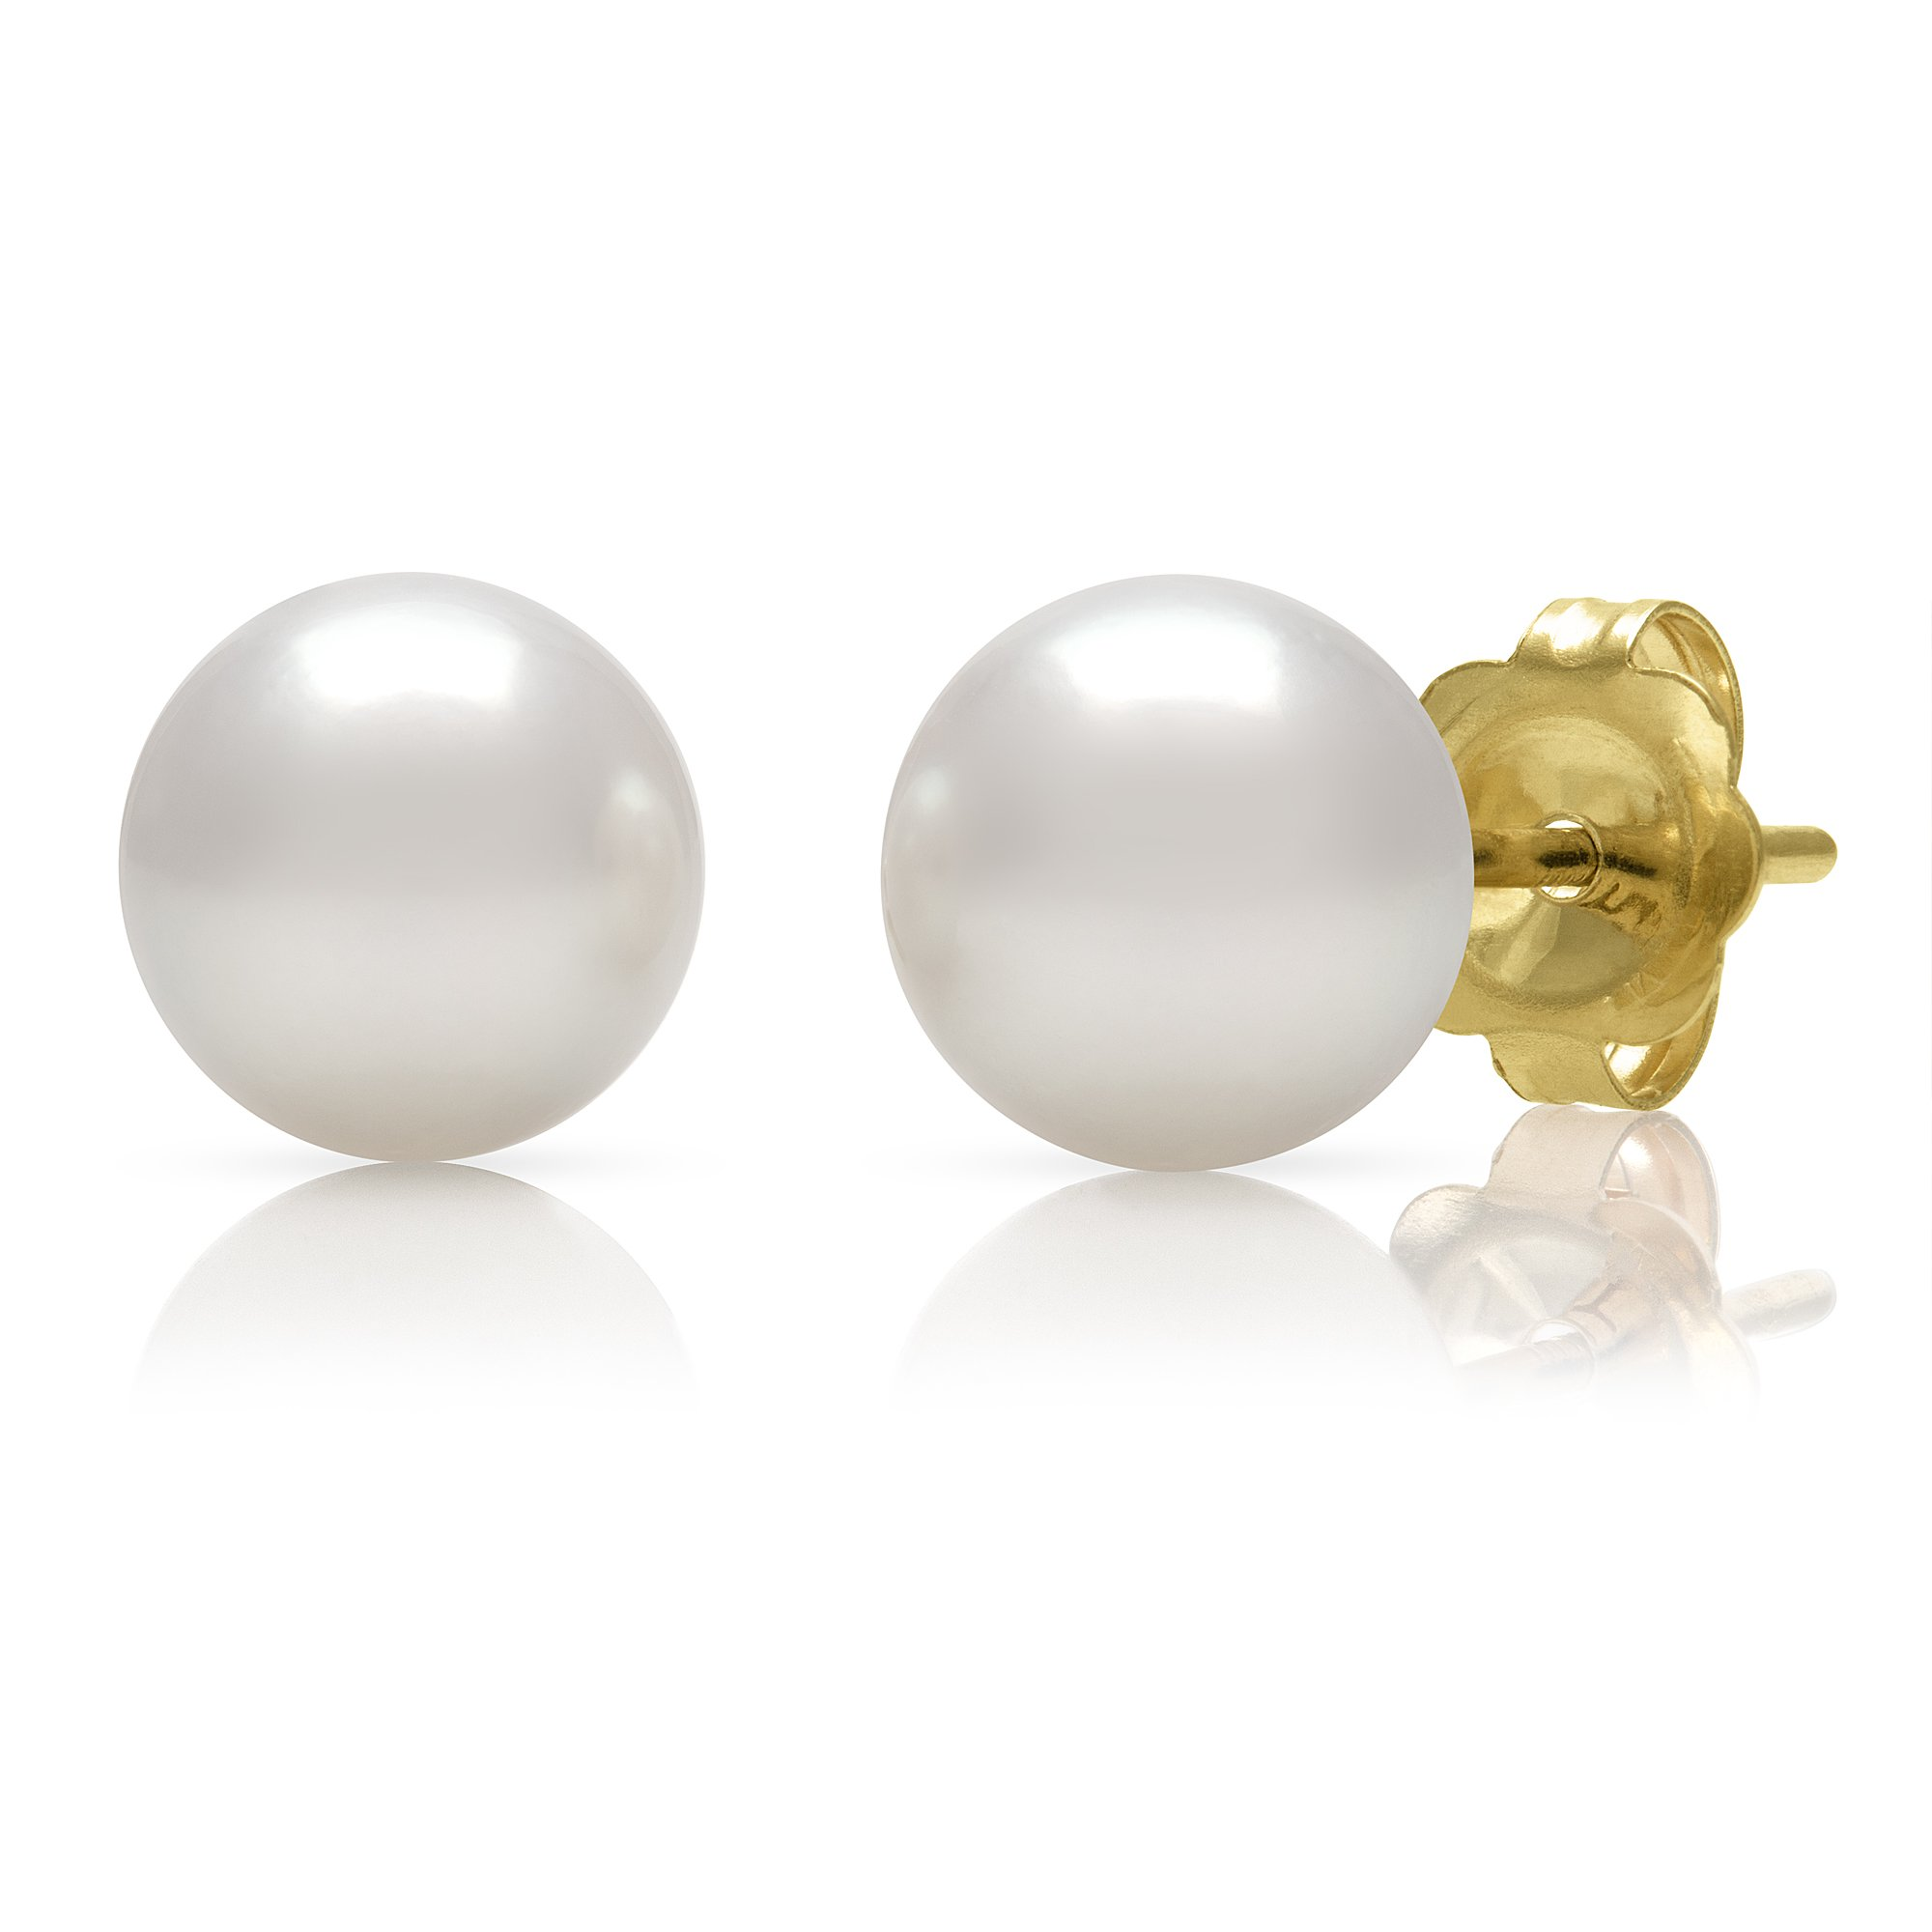 14K Yellow Gold 9.0-9.5mm White Cultured Freshwater Pearl Stud Earrings